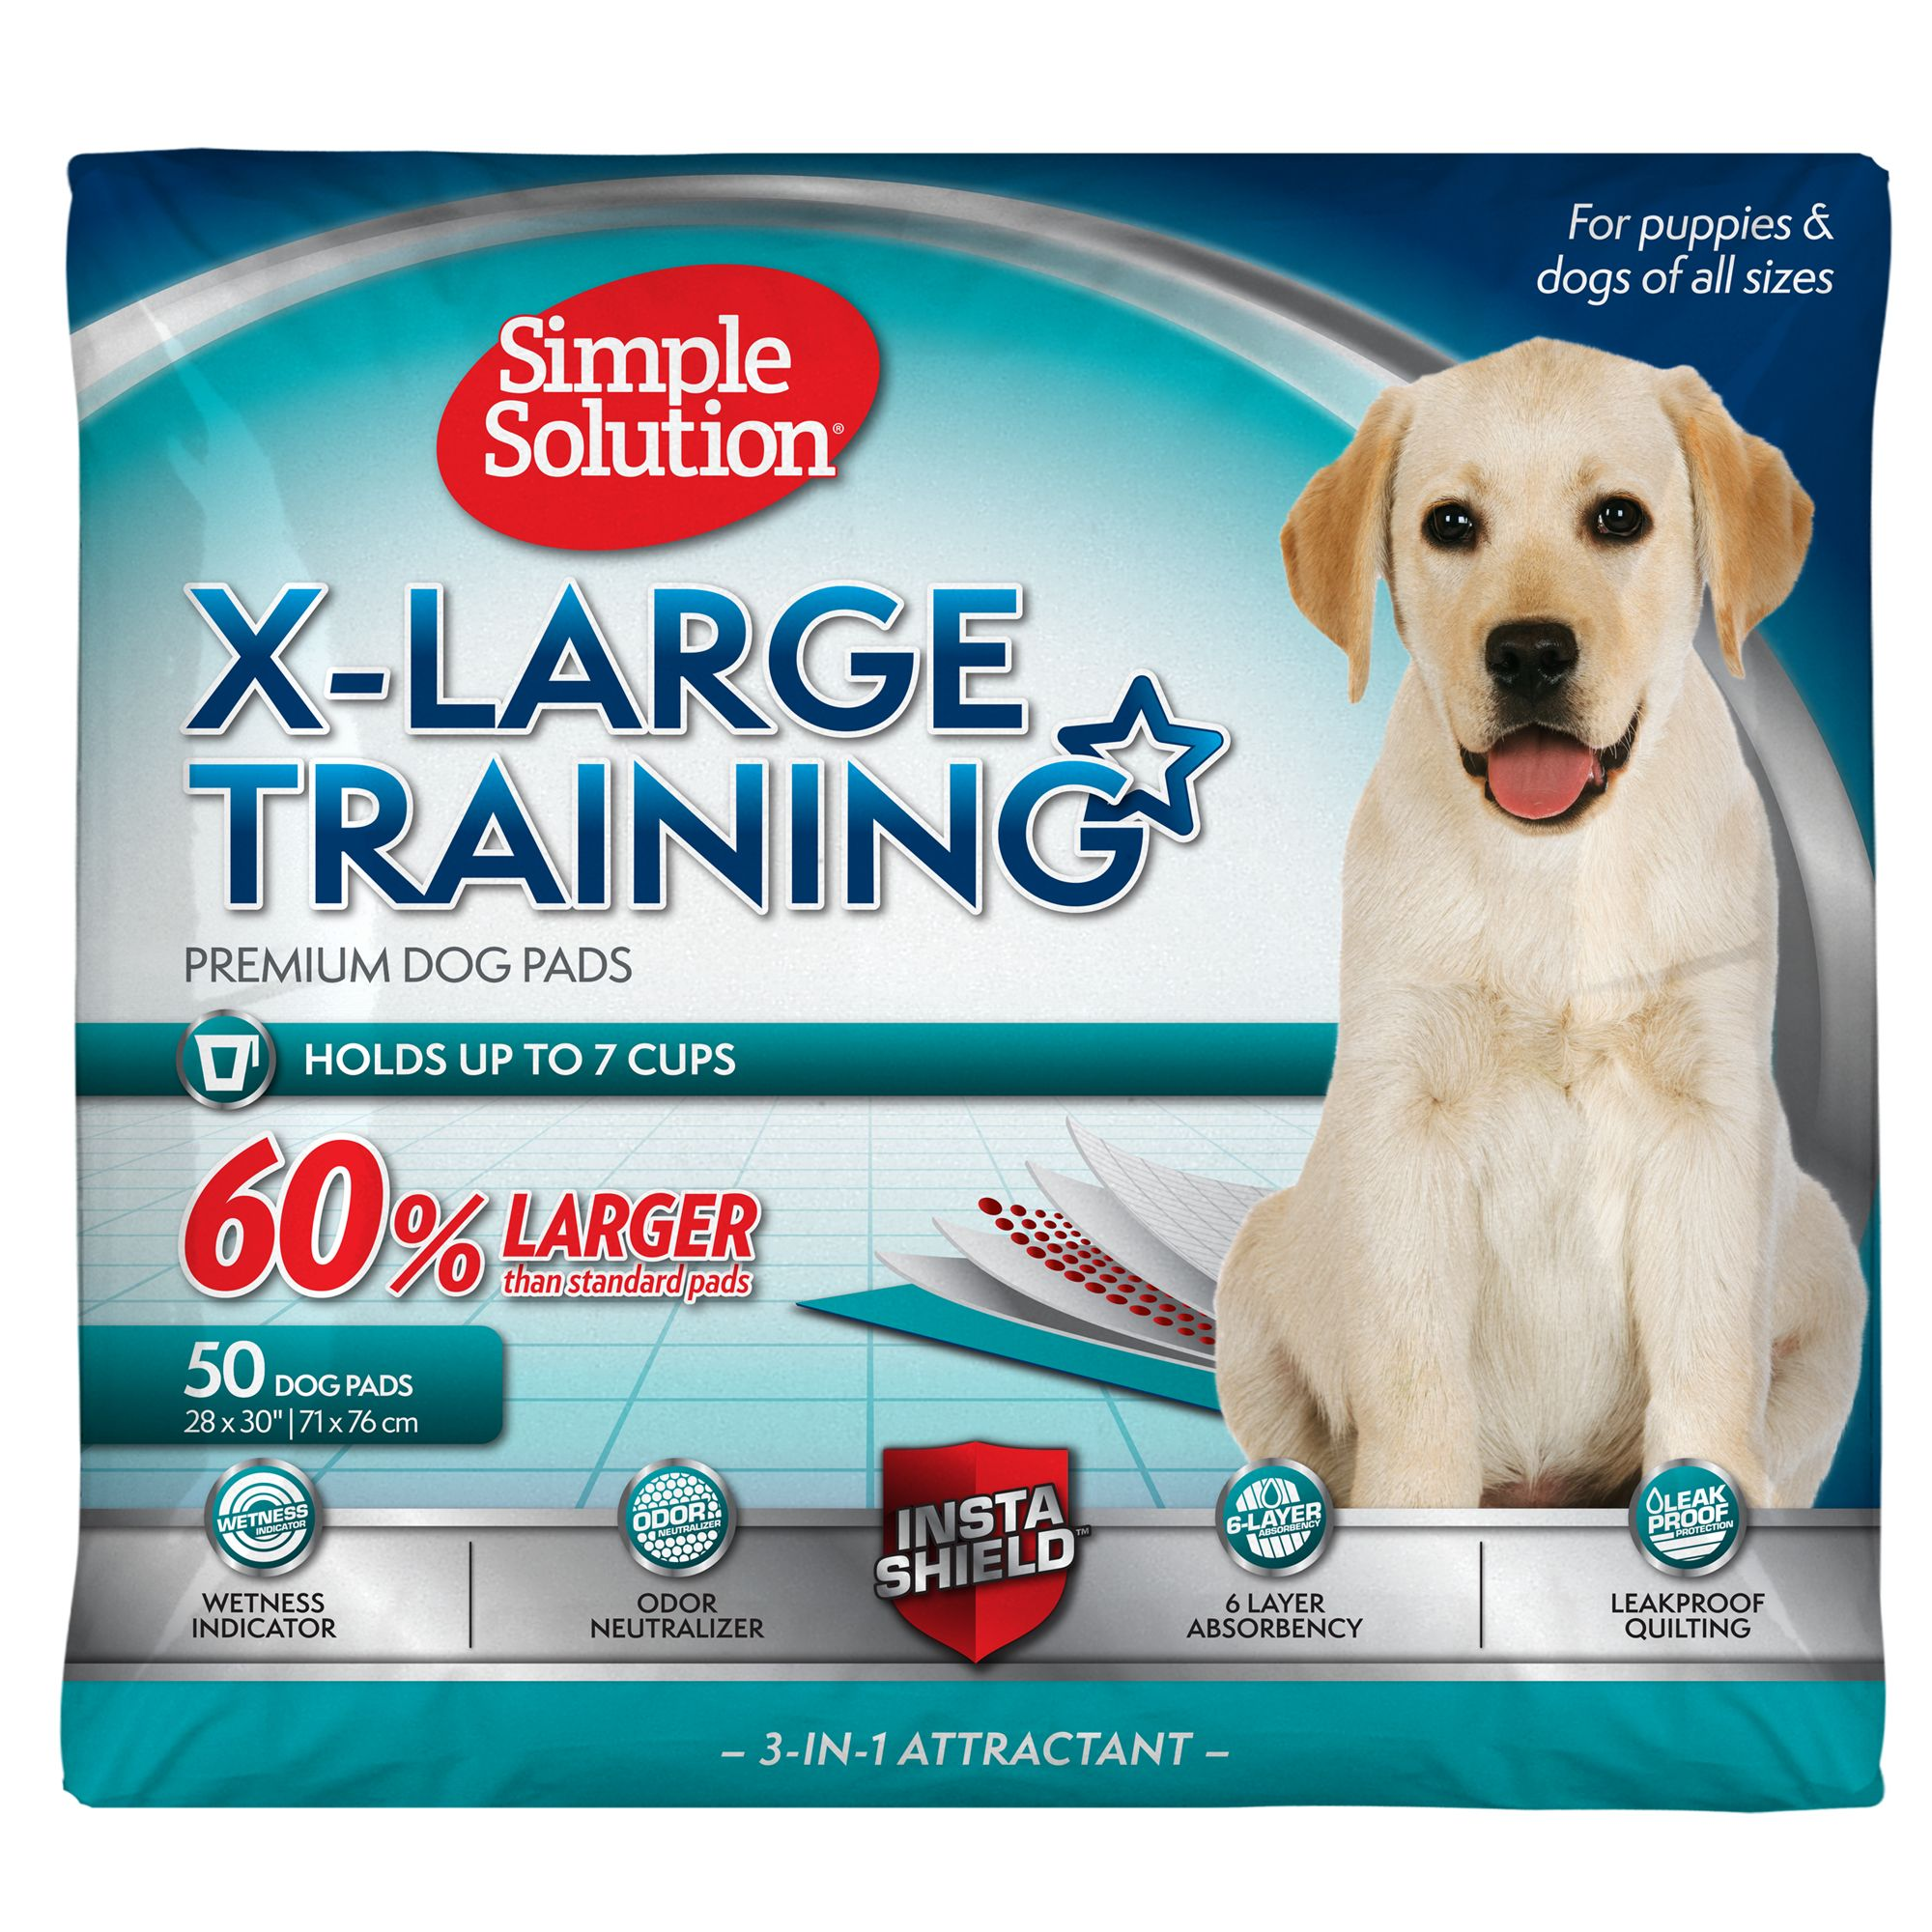 Simple Solution Oversized Training Dog Pads size: 50 Count 5147139